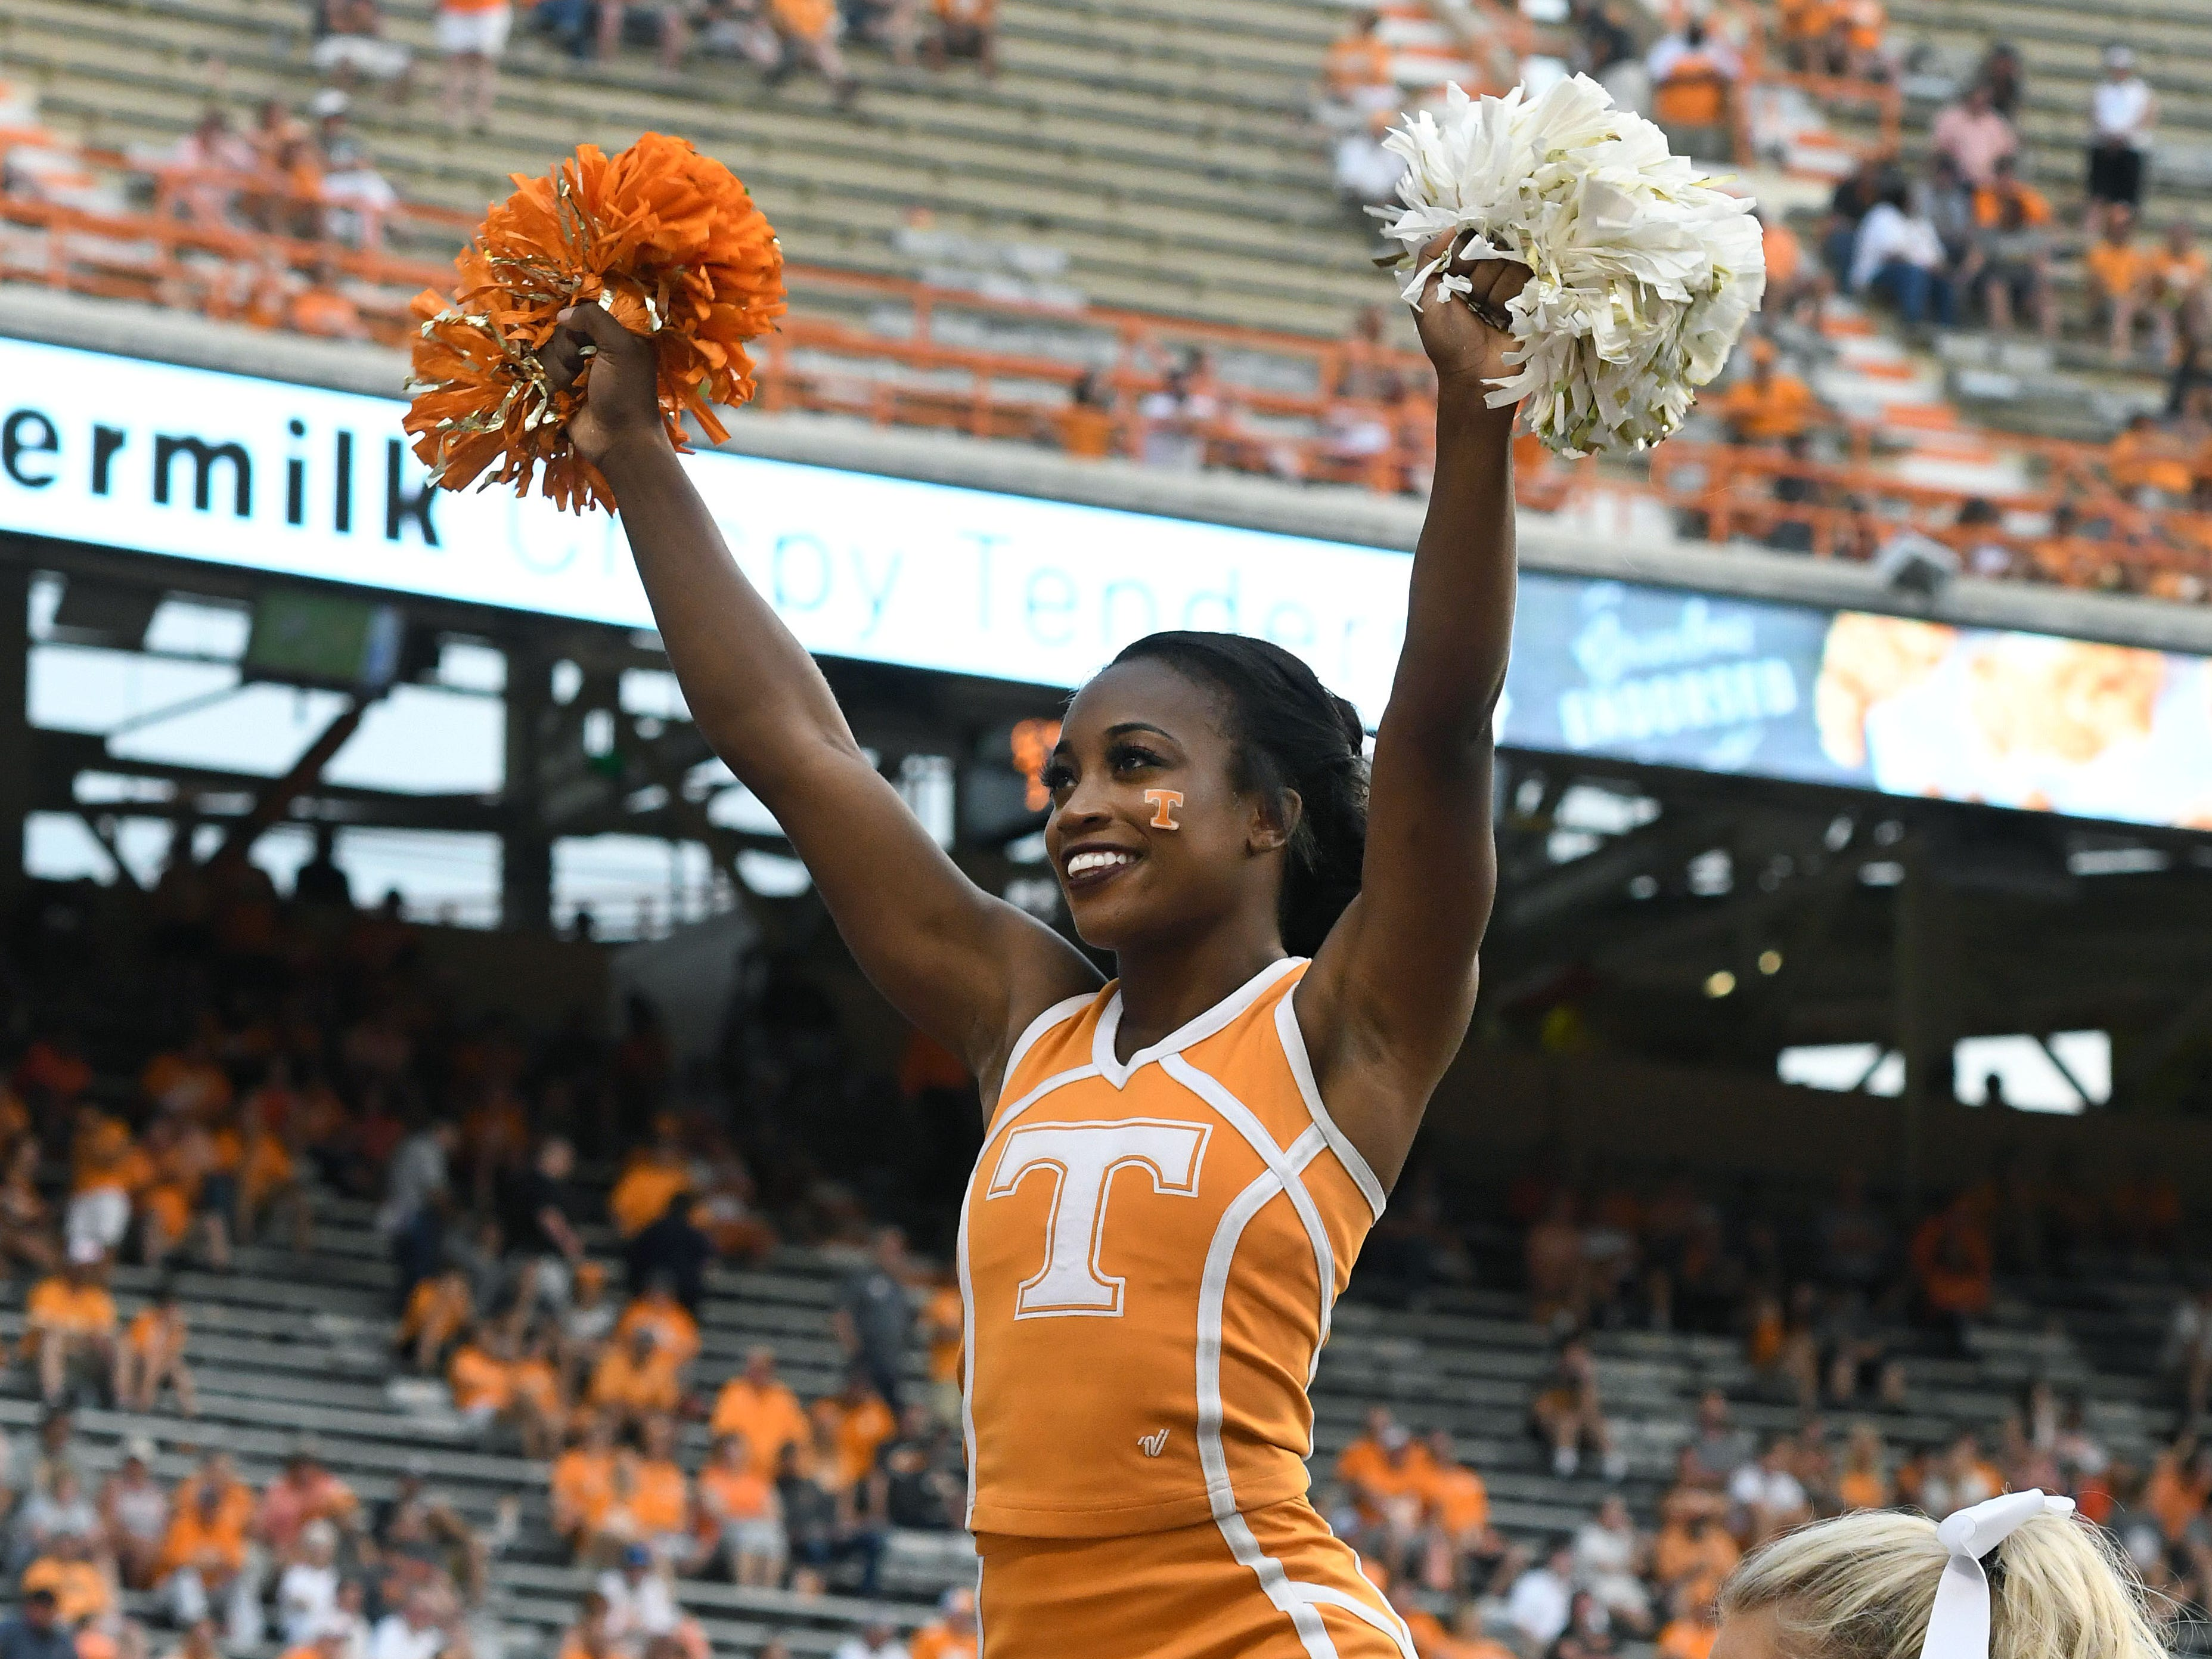 Tennessee cheerleaders Eleni Brinias, left, Chelsea Jackson, center, Keelie Woody, right, during the East Tennessee State Saturday, September 8, 2018 at Neyland Stadium in Knoxville, Tenn.